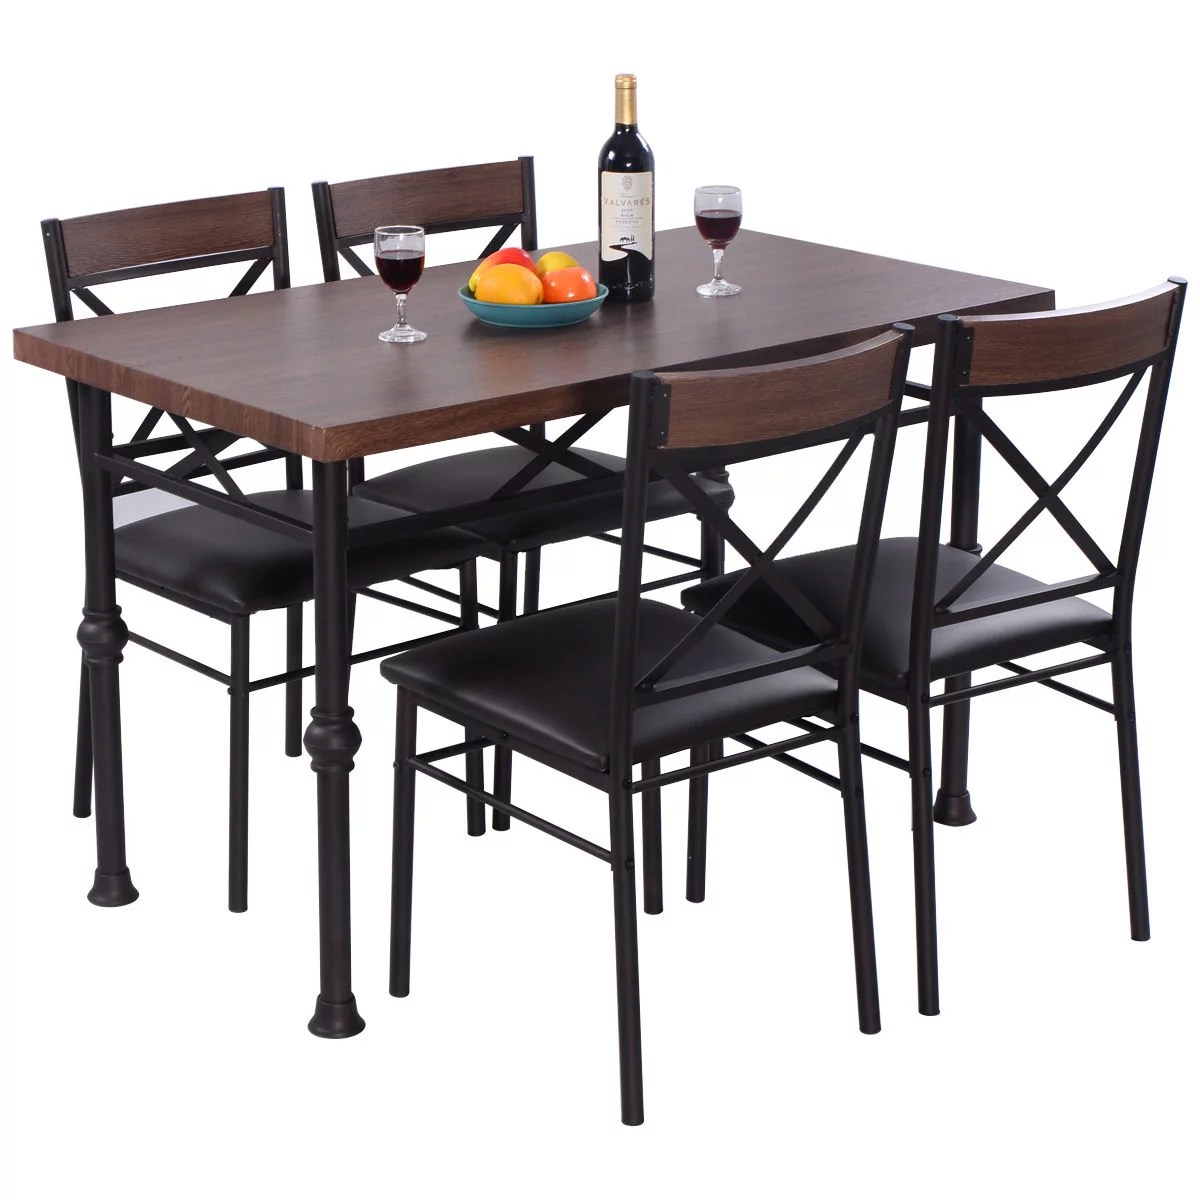 Wood And Metal Dining Chairs Costway 5 Piece Dining Set Table And 4 Chairs Wood Metal